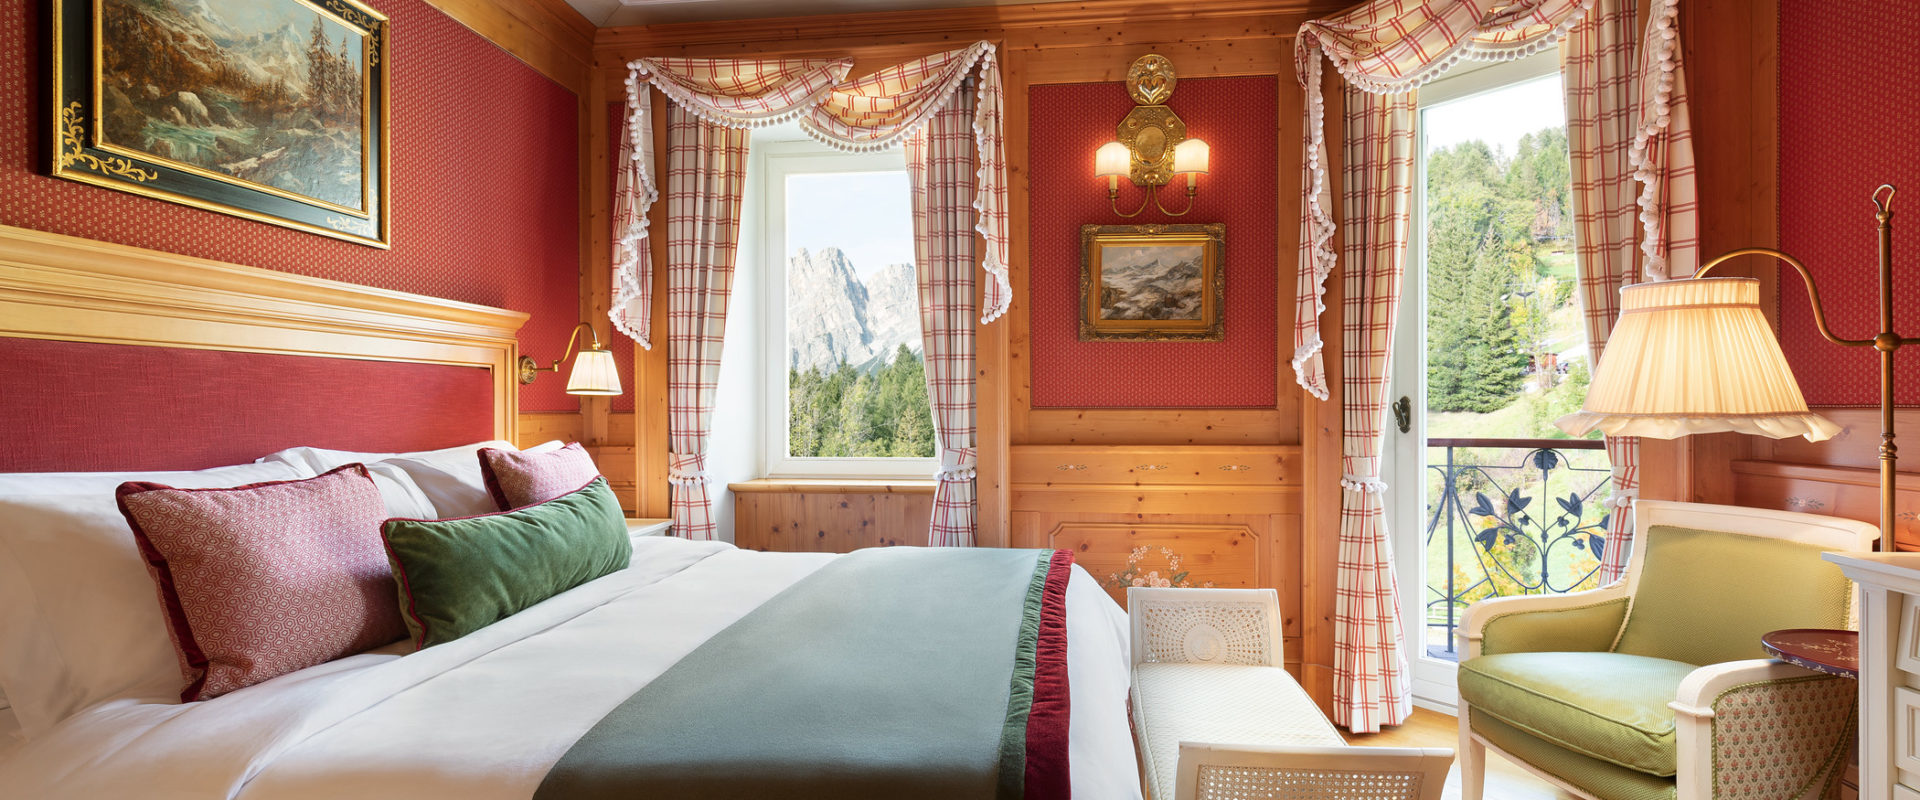 King Suite at Cristallo, a Luxury Collection Resort & Spa, Cortina d'Ampezzo